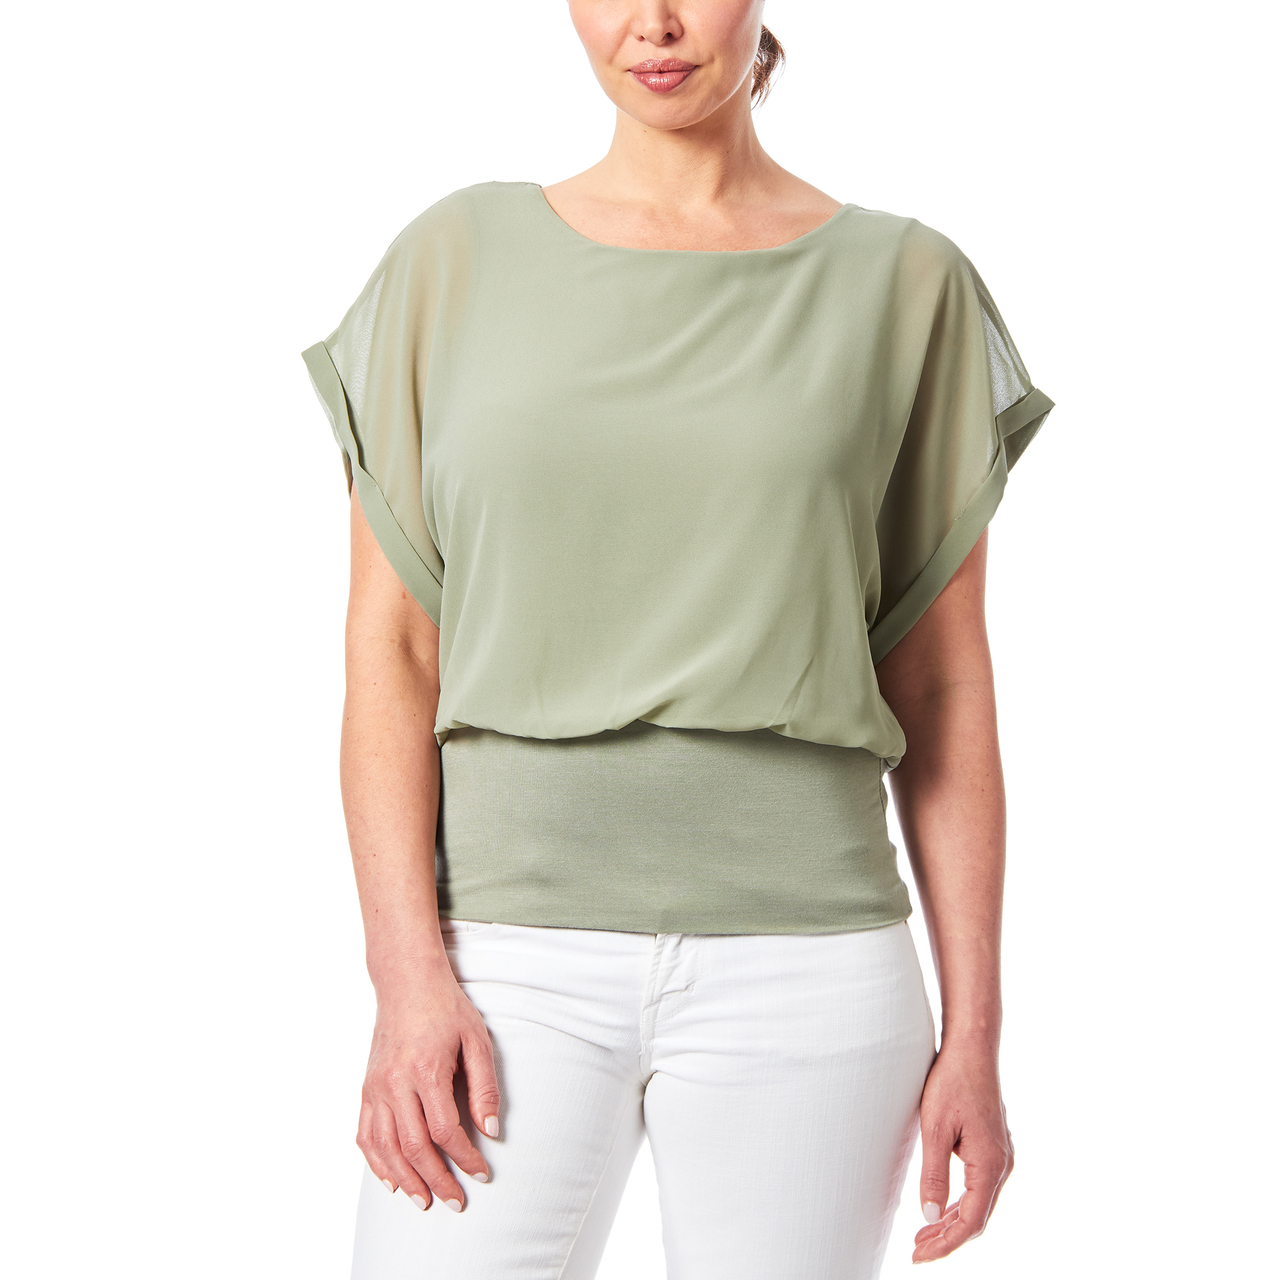 Dolman Sleeve Chiffon Top With Knit Banded Bottom In Sage Green